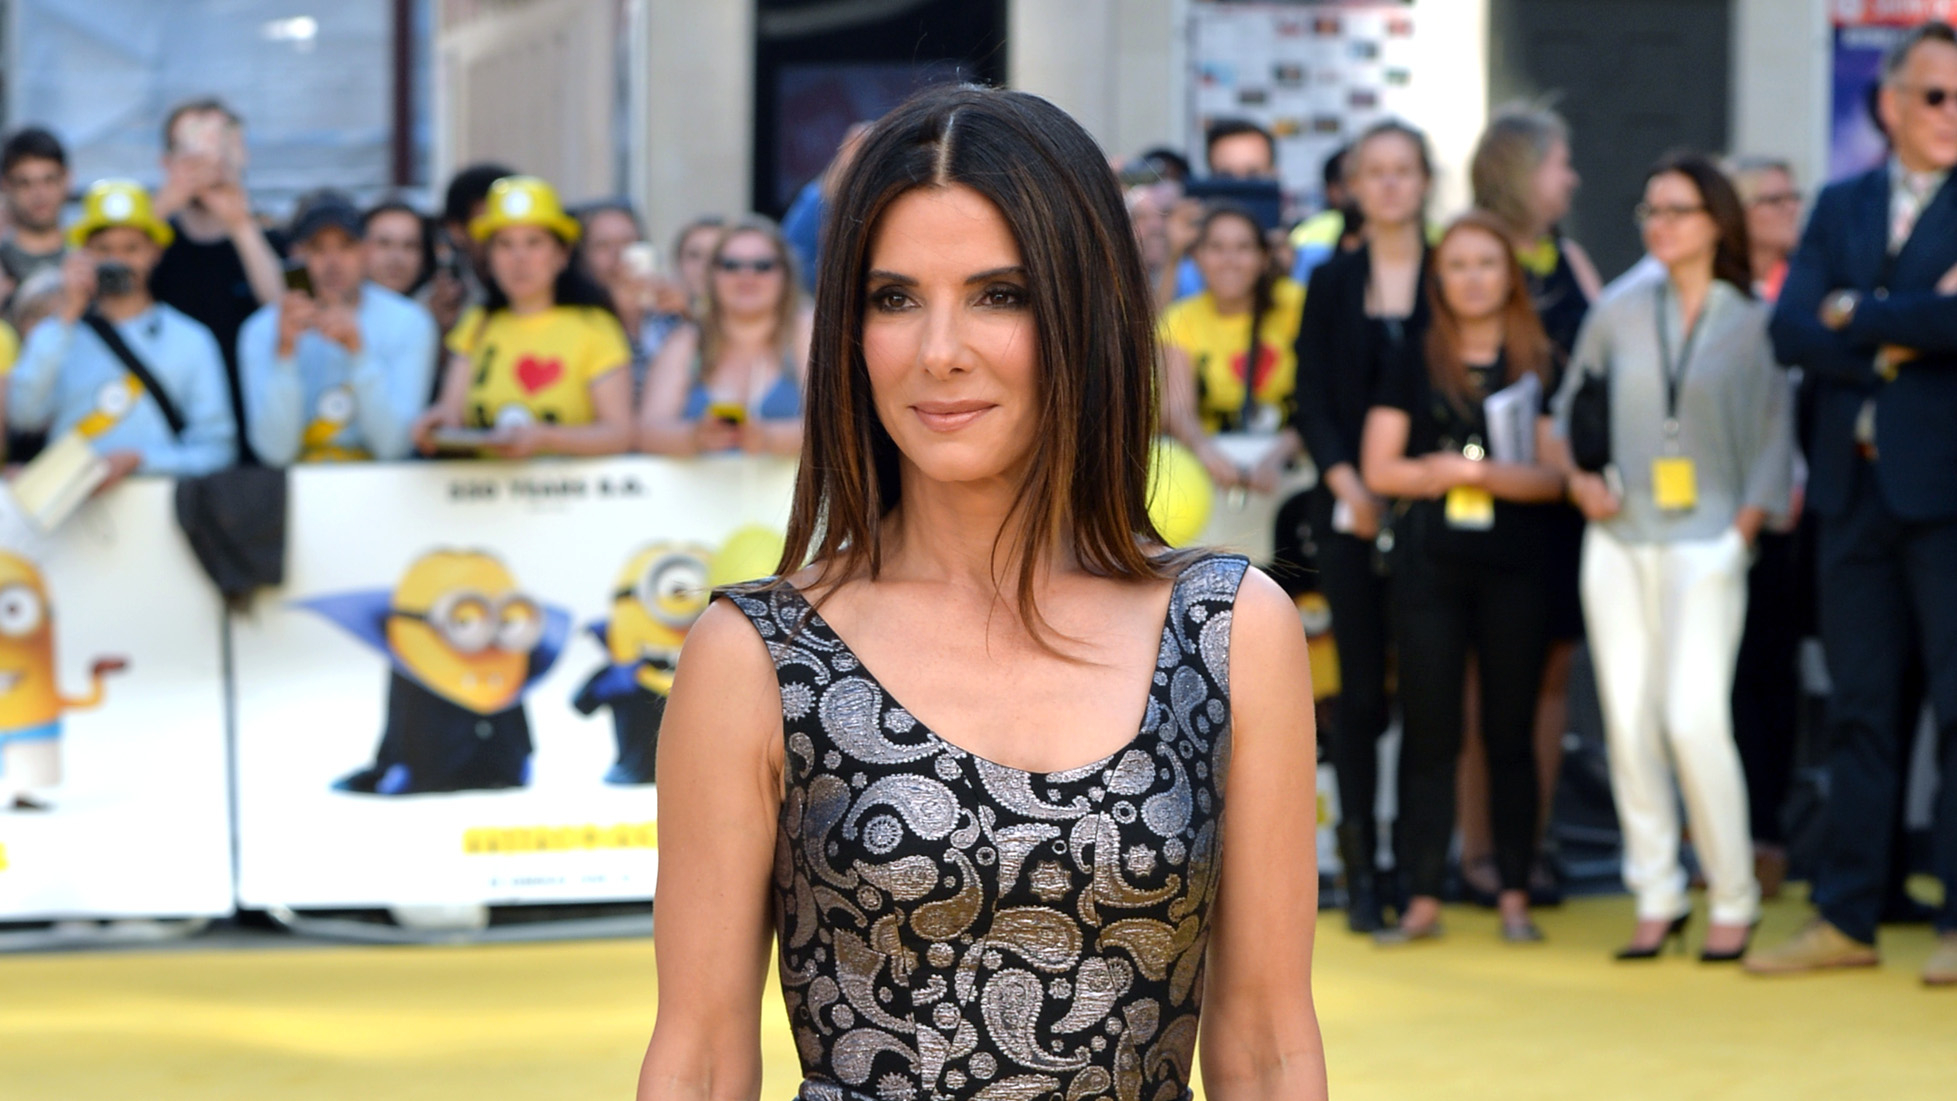 Sandra Bullock Adopts Dog Nearly 1 Year After 2 Former Dogs Die